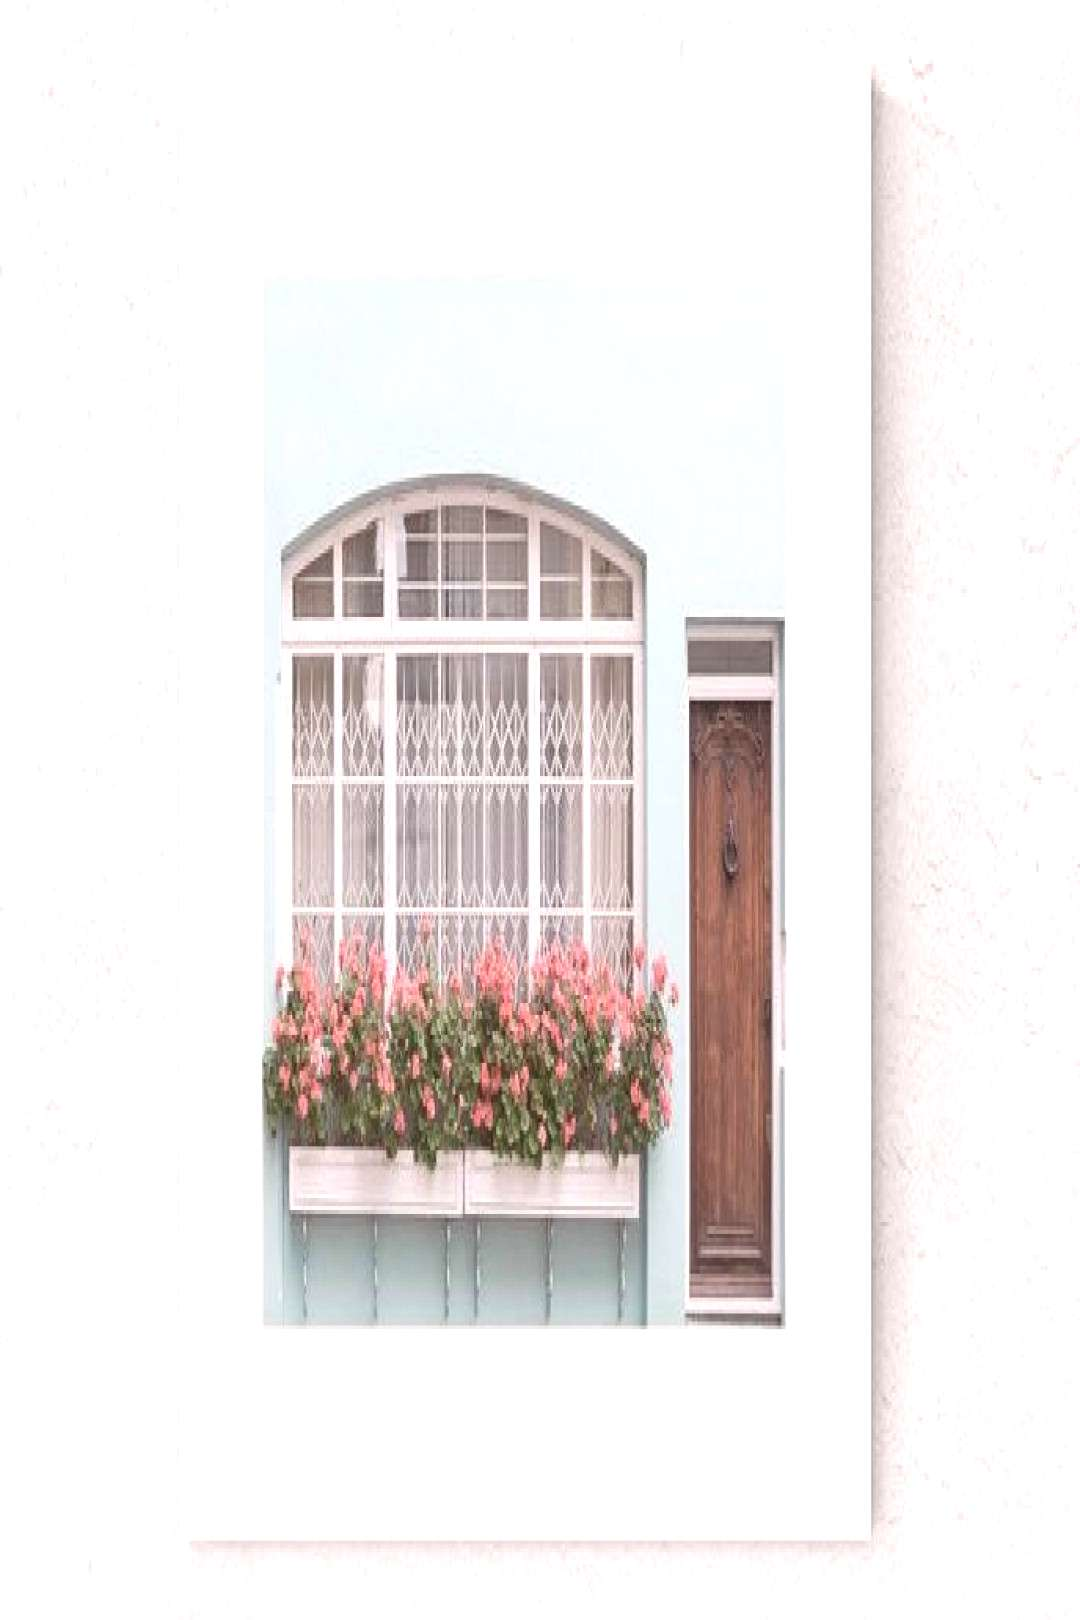 London, Seafoam Green, English Mews House, Architecture, Coral Geraniums, Door, Whimsy, Europe, Tra